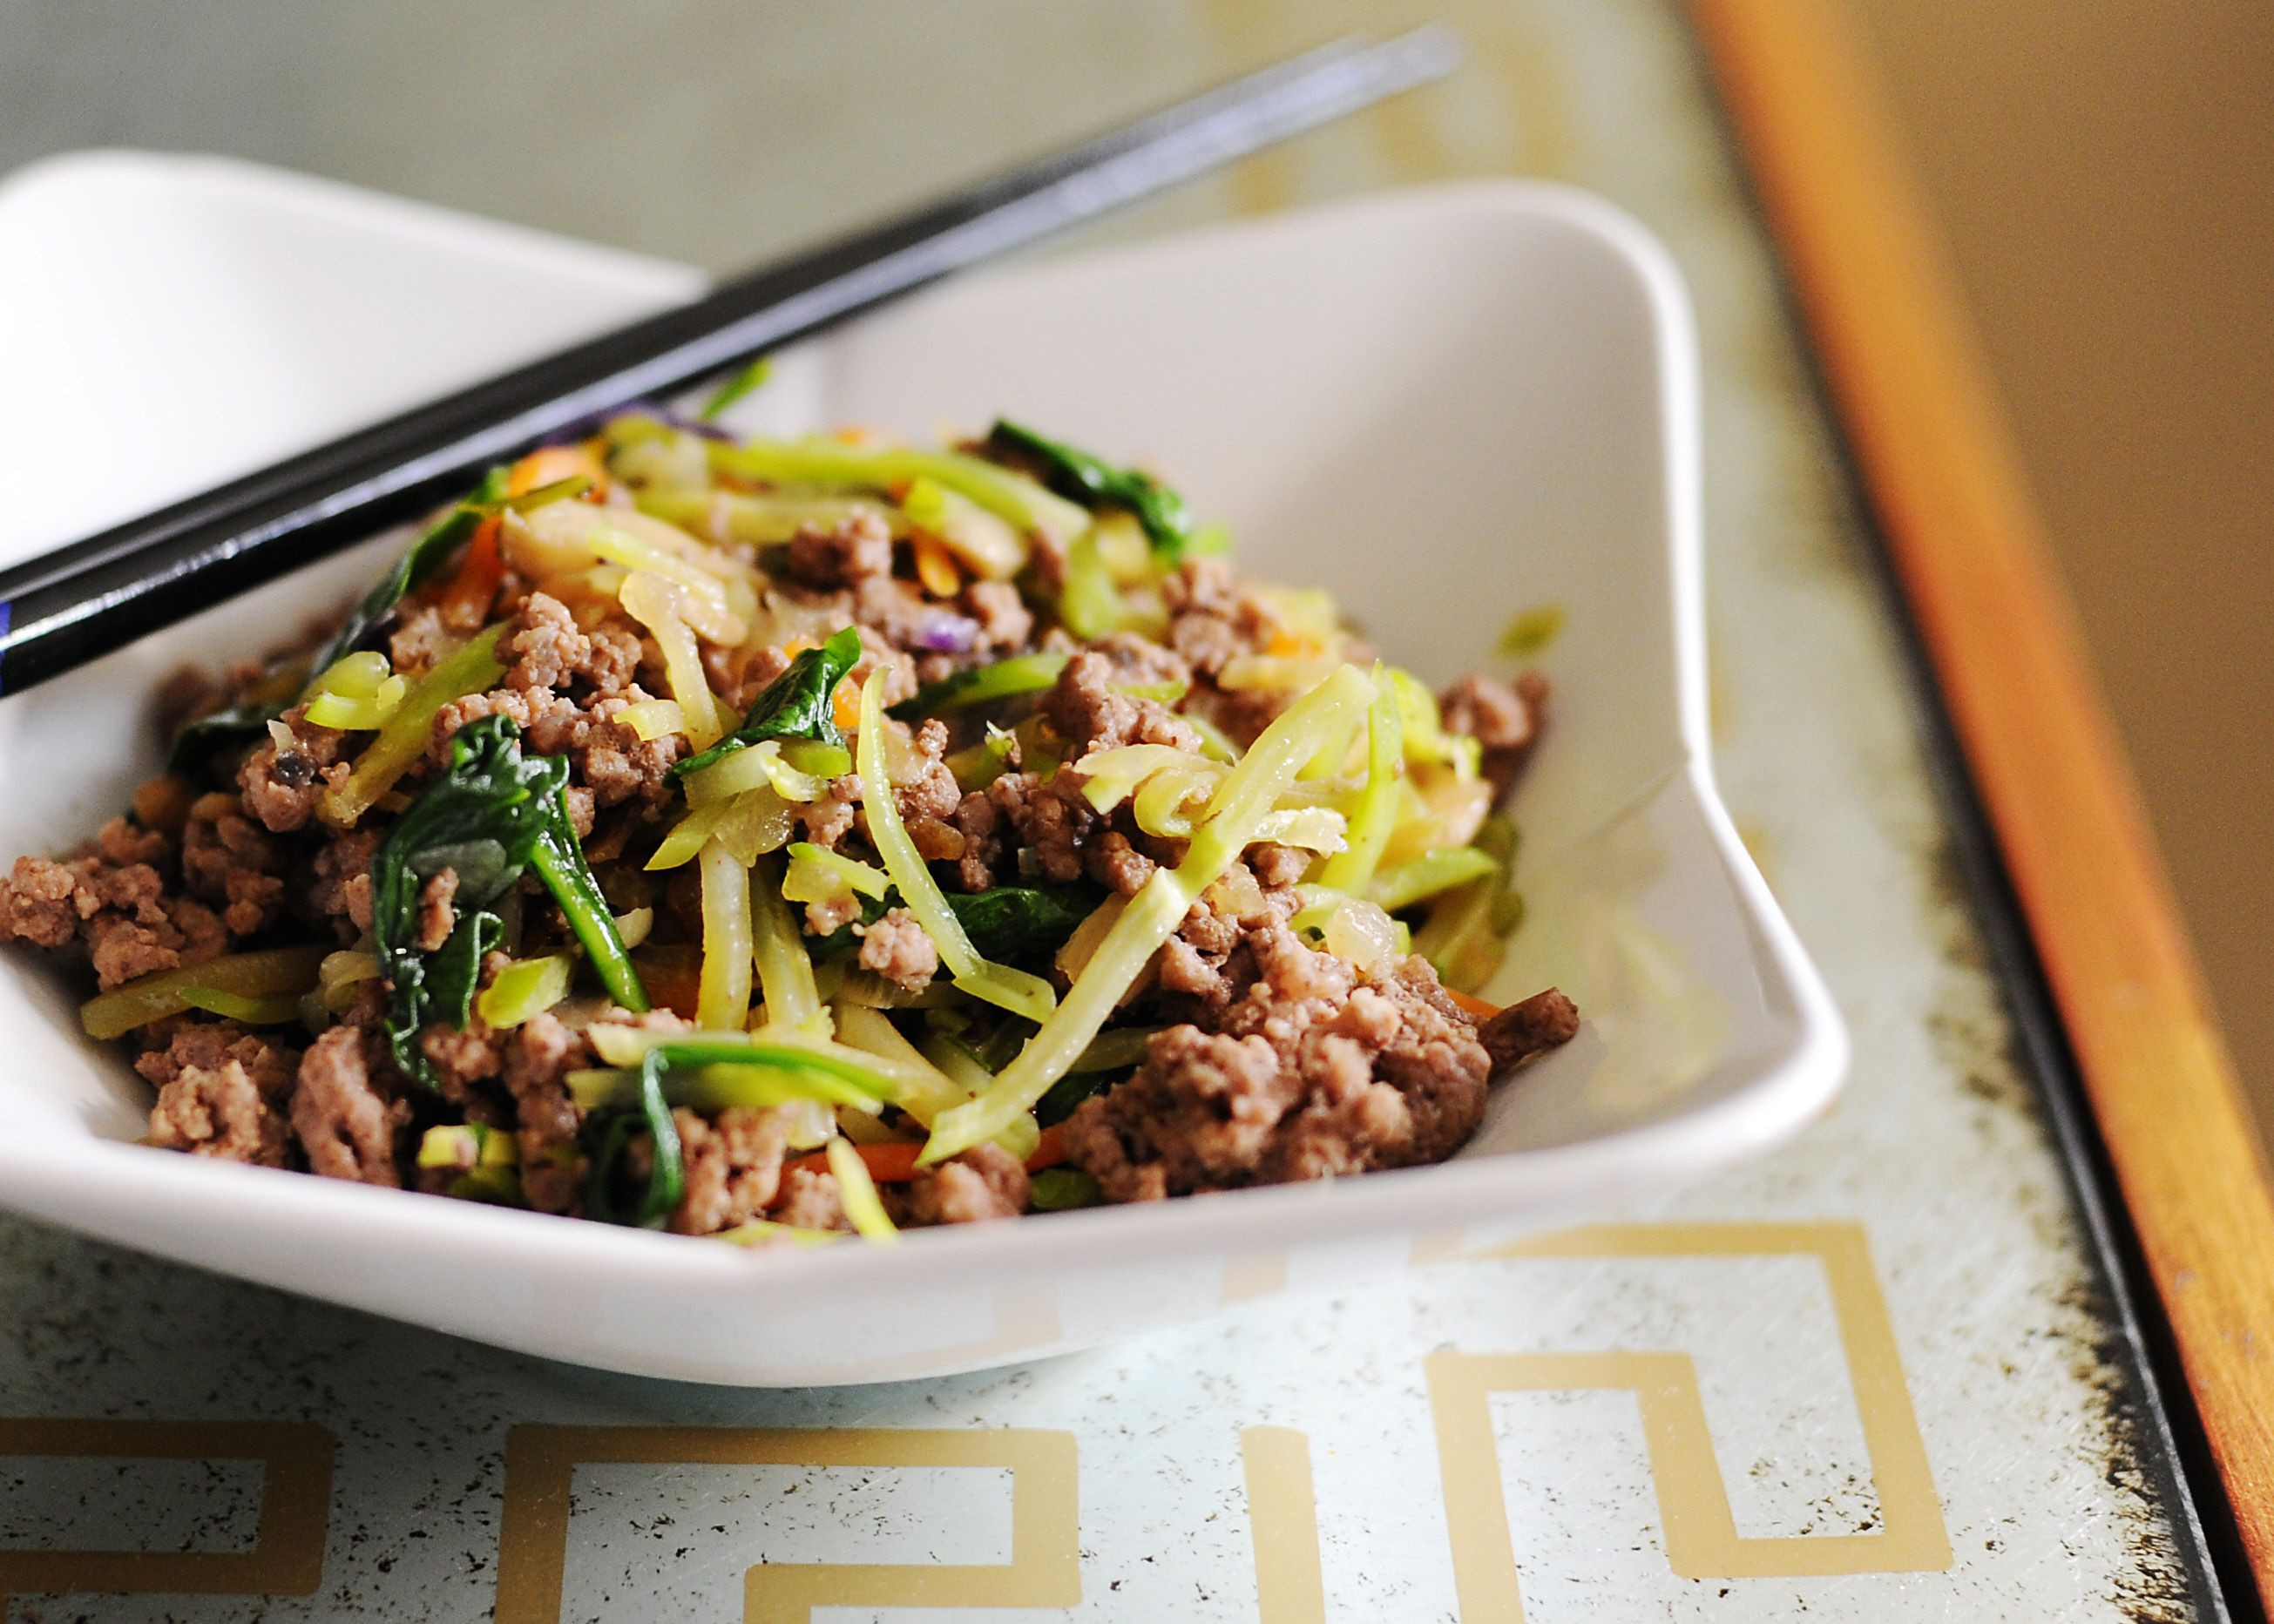 Ground Beef Recipes Healthy Paleo  Paleo asian ground beef broccoli slaw So easy and so good